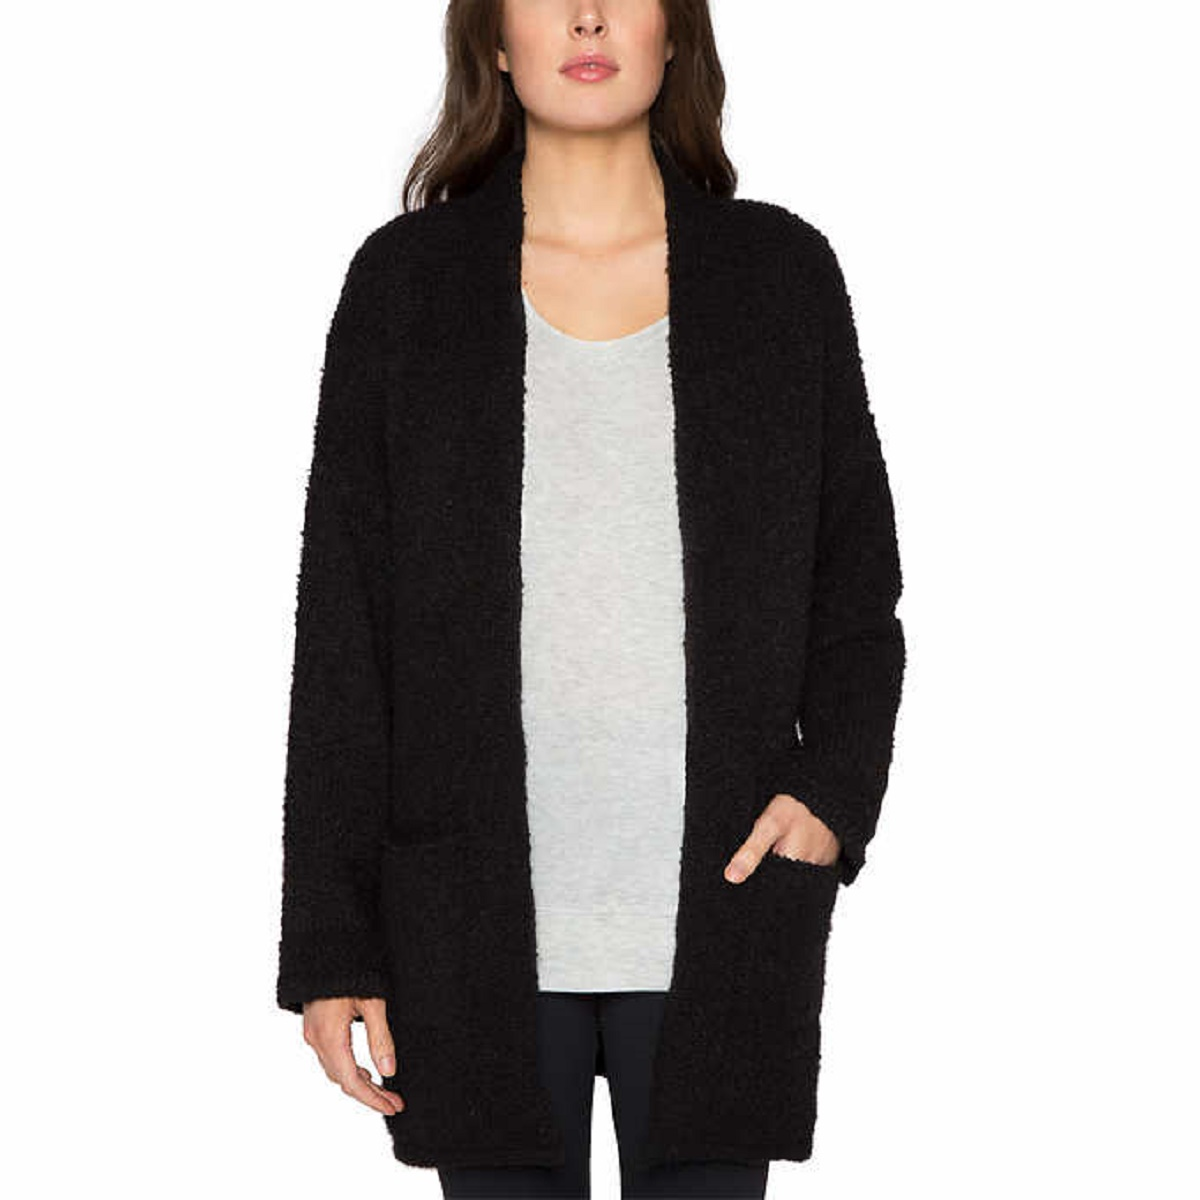 Matty M Women's Oversized Open Front Cardigan Sweater | eBay